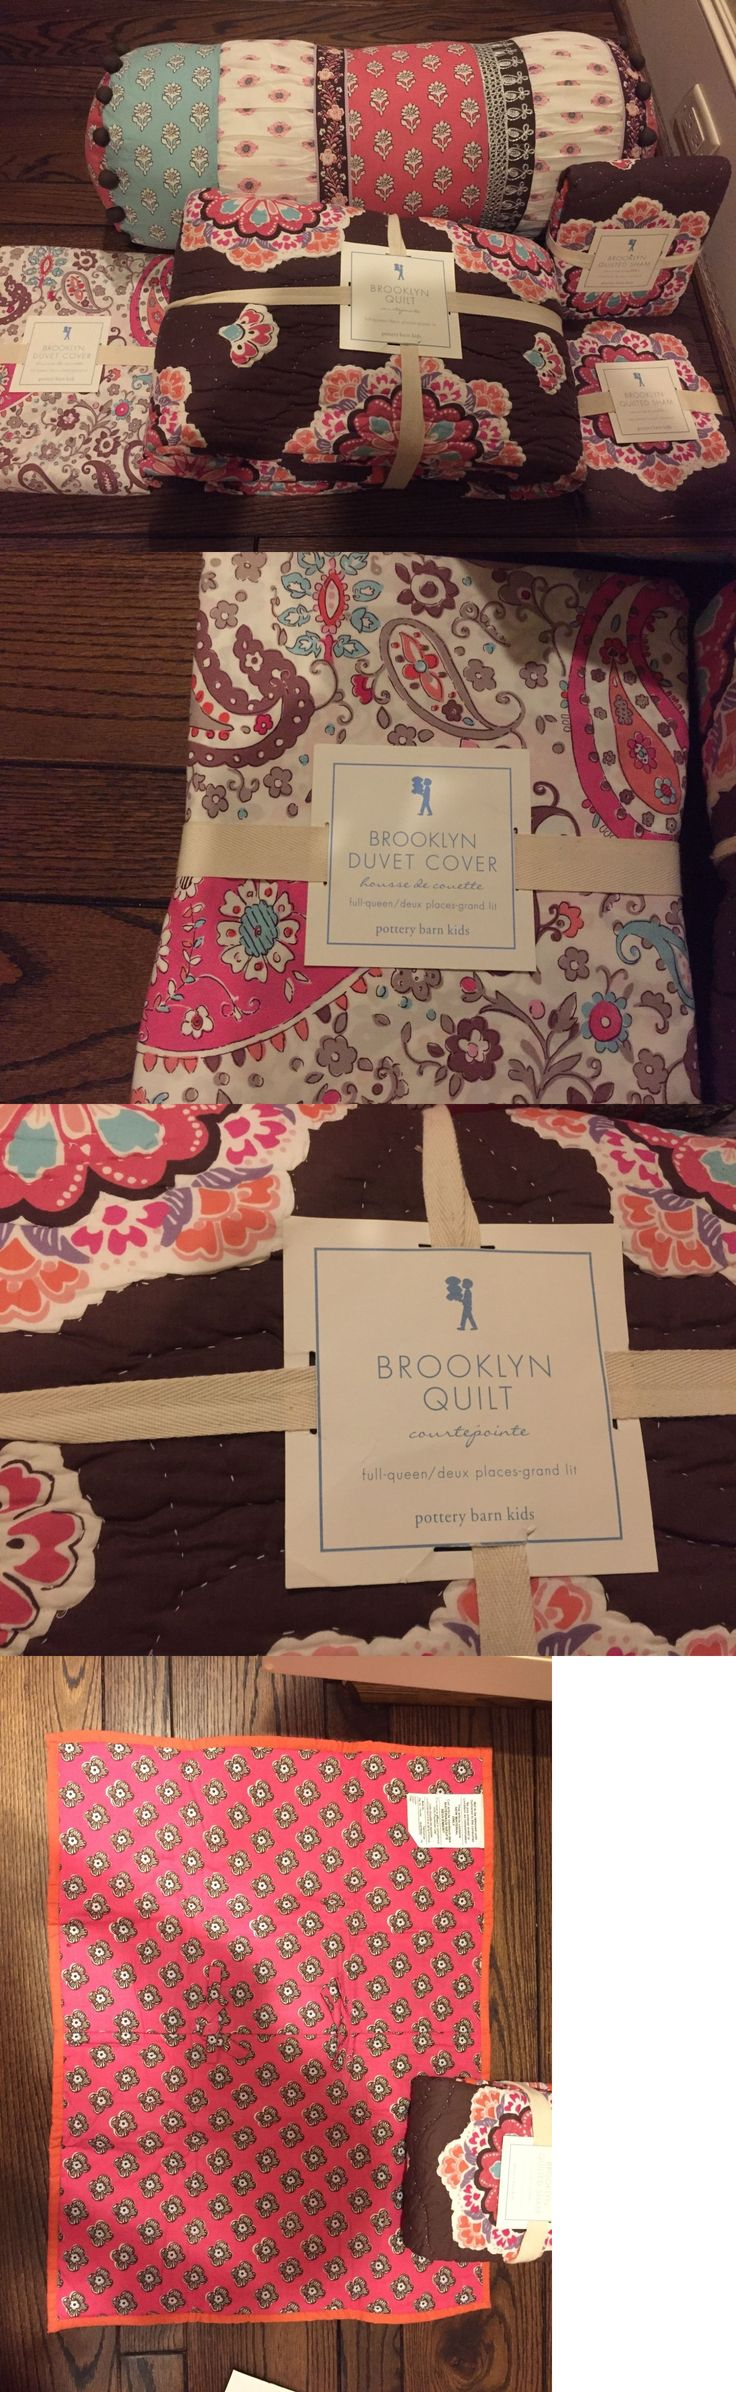 Kids Bedding: Pottery Barn Kids Brooklyn Paisley Bedding Set Full Queen Quilt Shams Duvet New -> BUY IT NOW ONLY: $215.0 on eBay!